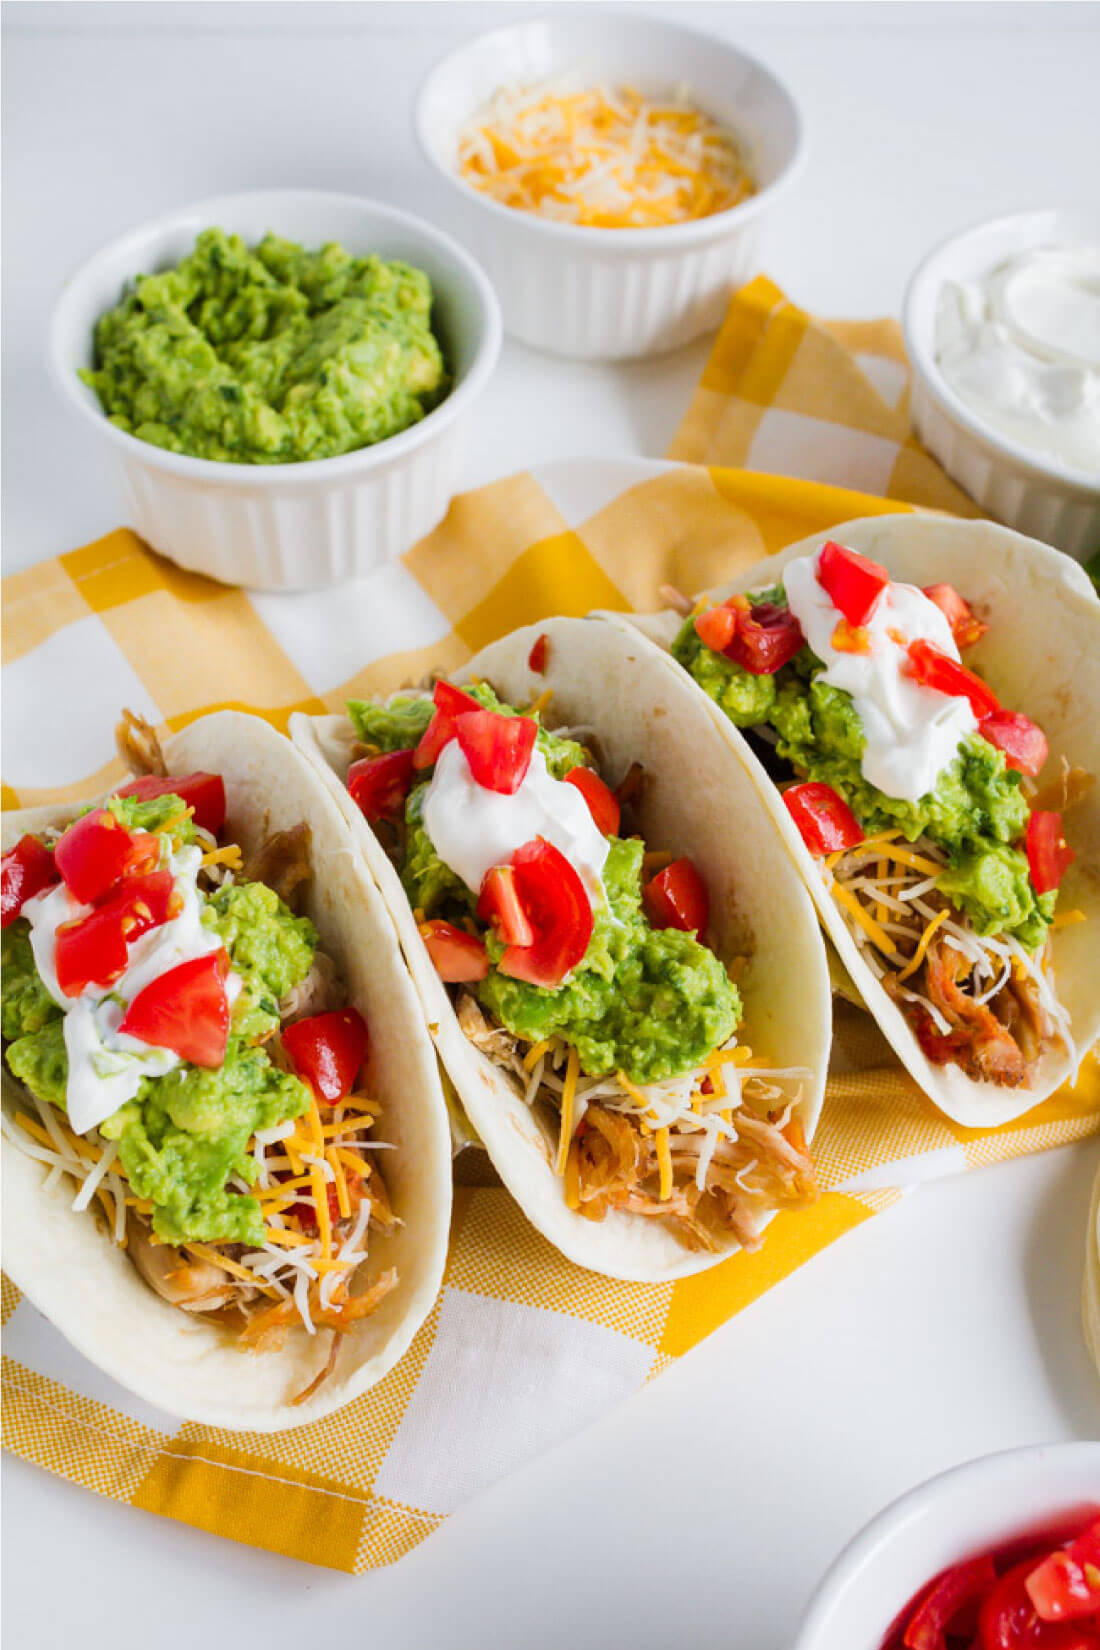 Full of flavor with a little spice, this Pork Carnitas recipe is a tasty Mexican favorite. Made with optional toppings. www.thirtyhandmadedays.com